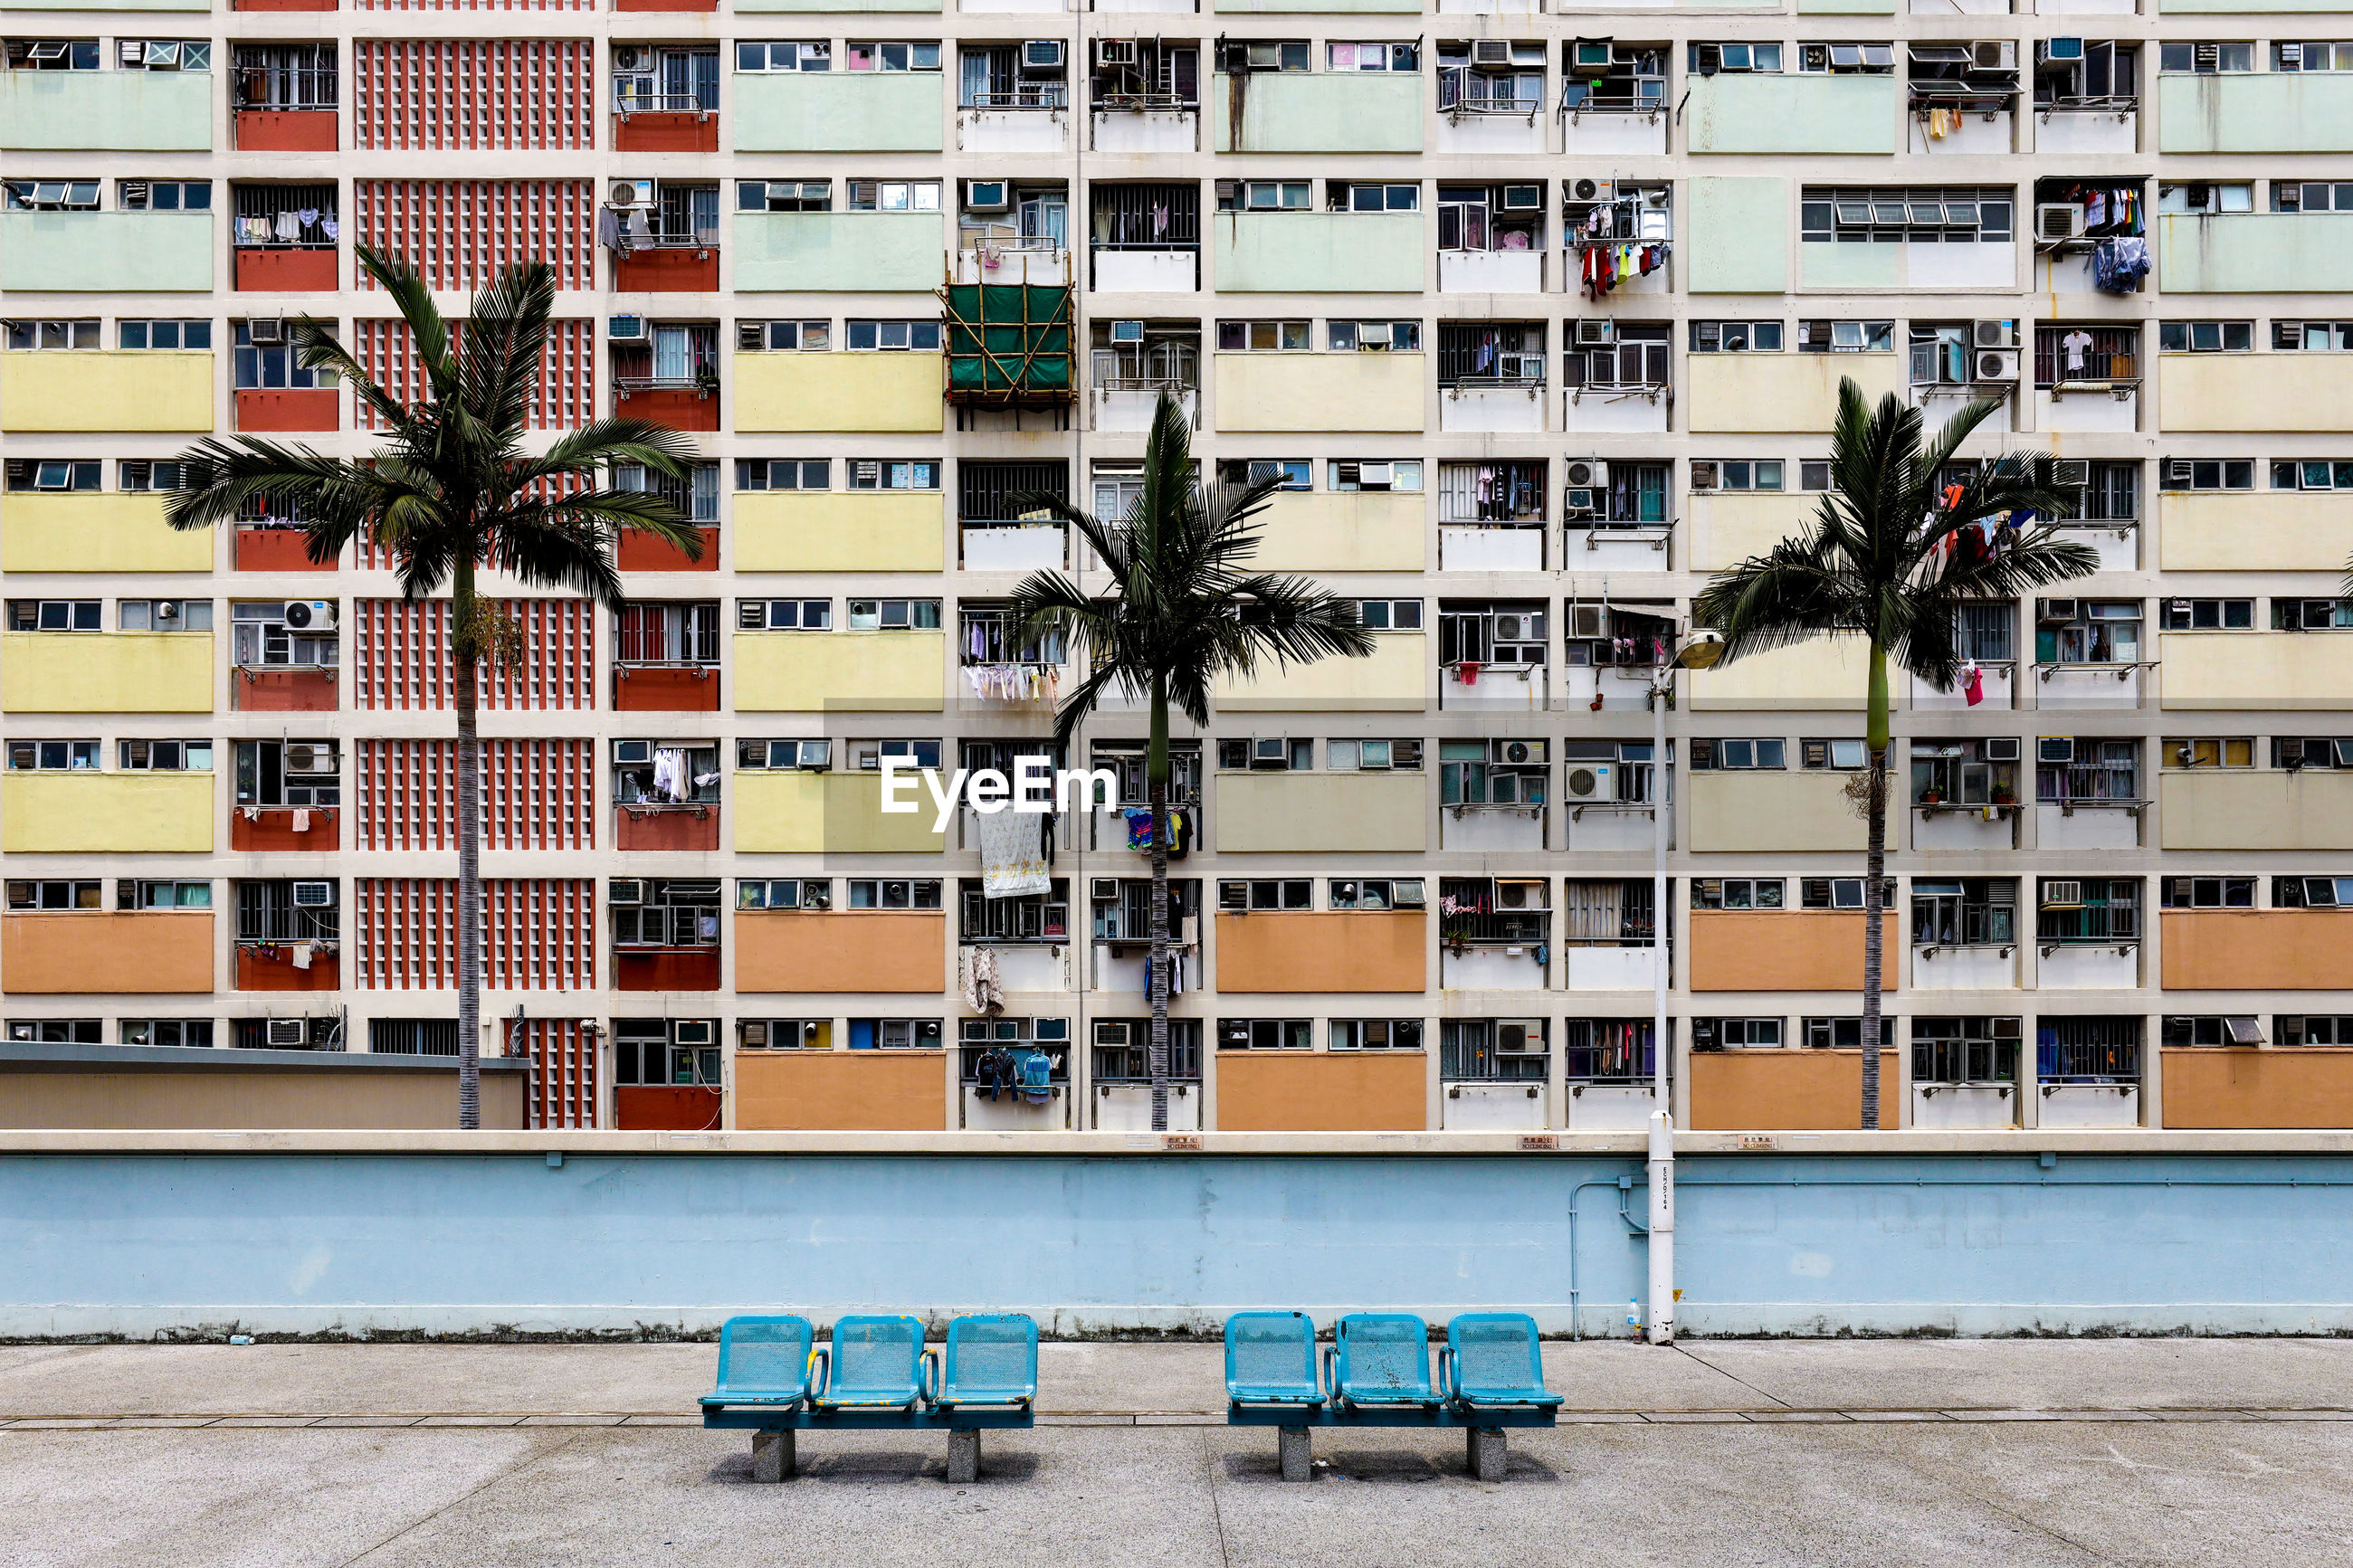 Empty benches against colorful building